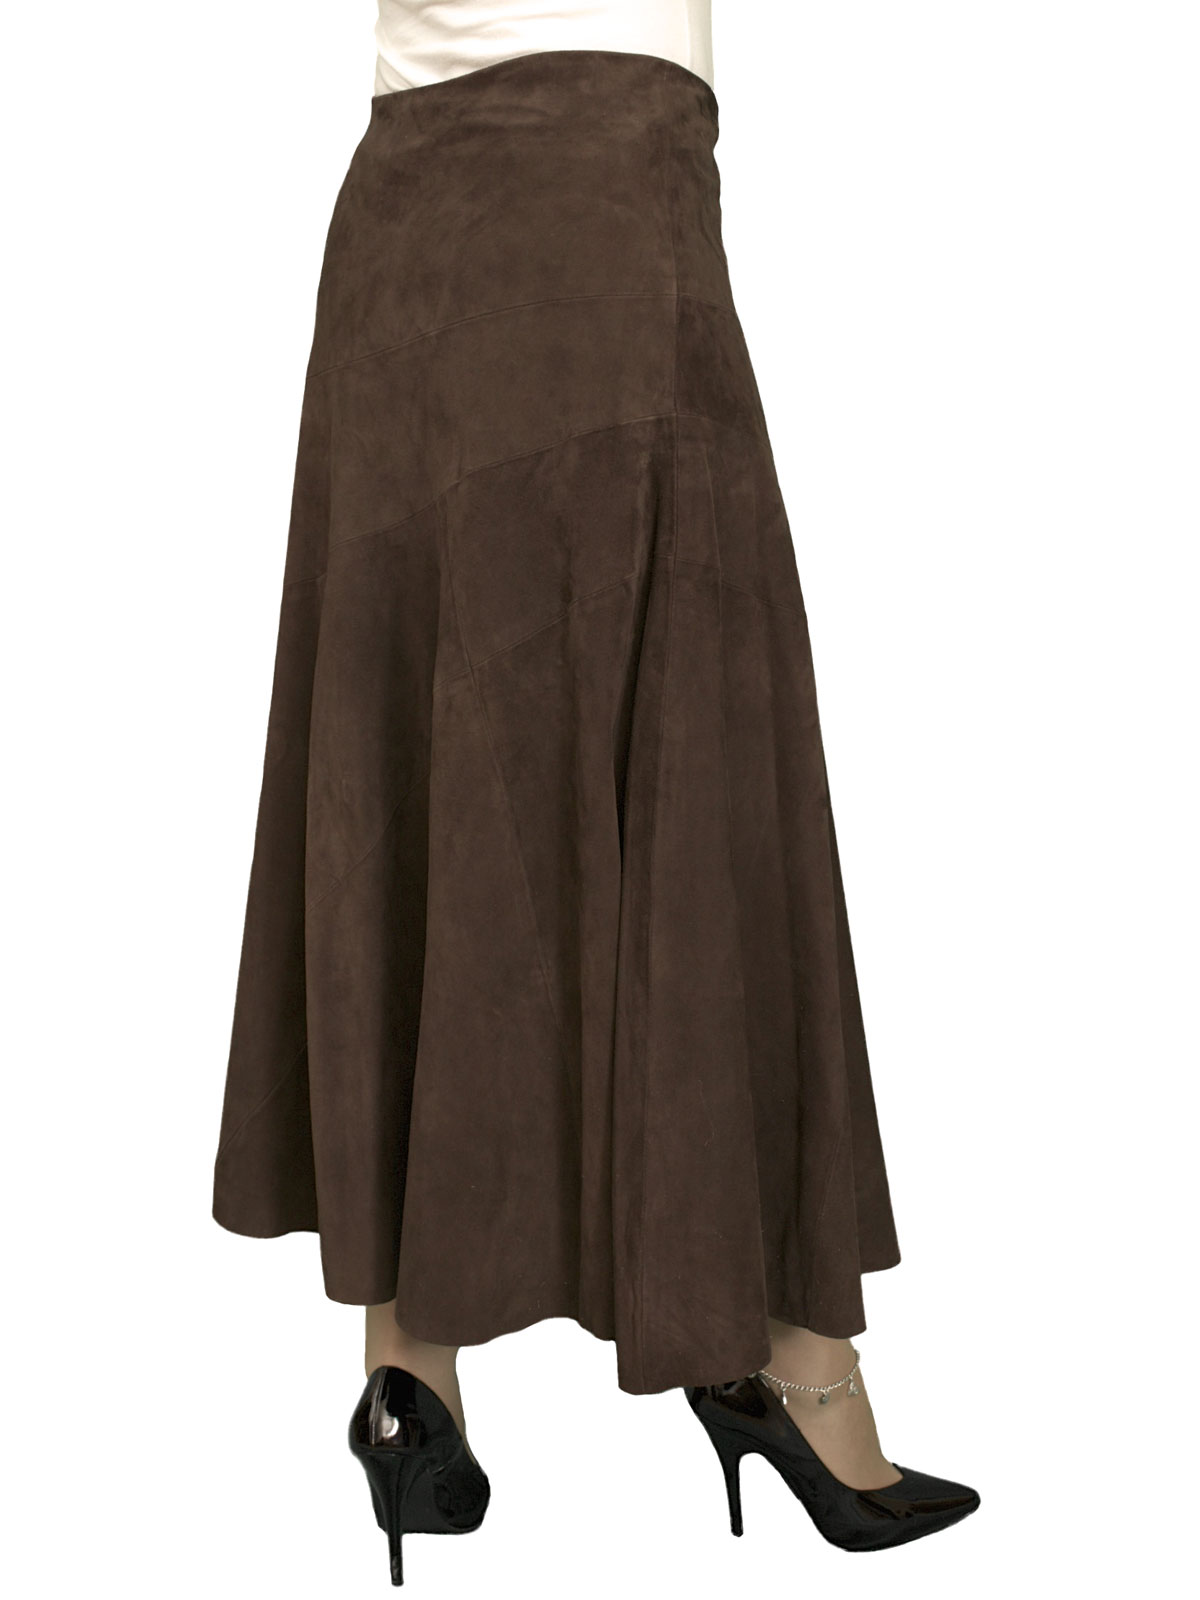 Brown long suede full midi skirt